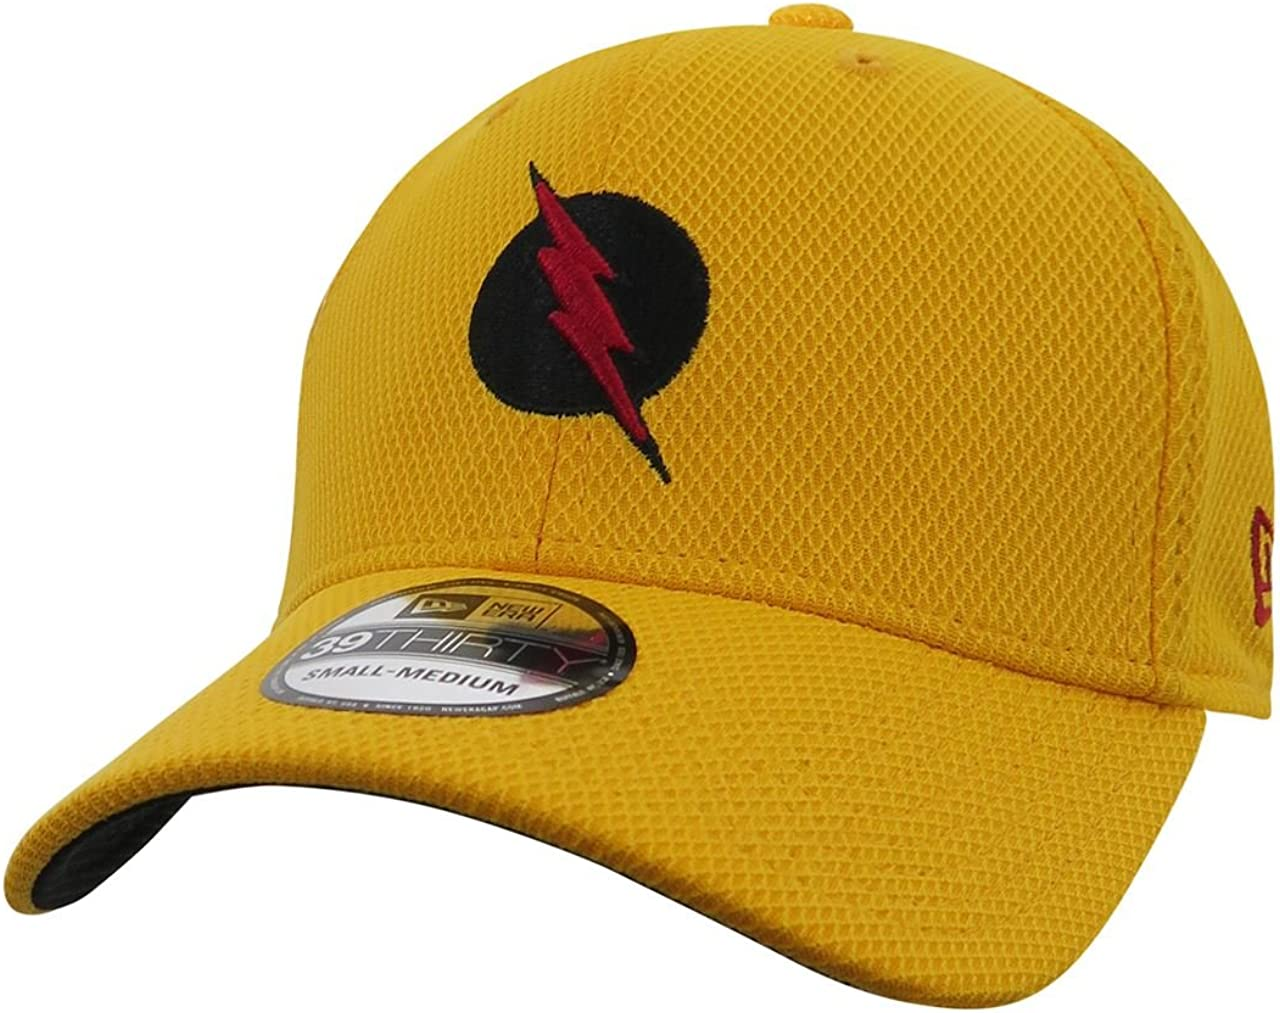 NIGHTWING symbole Armor 39 thirty Fitted Hat Black